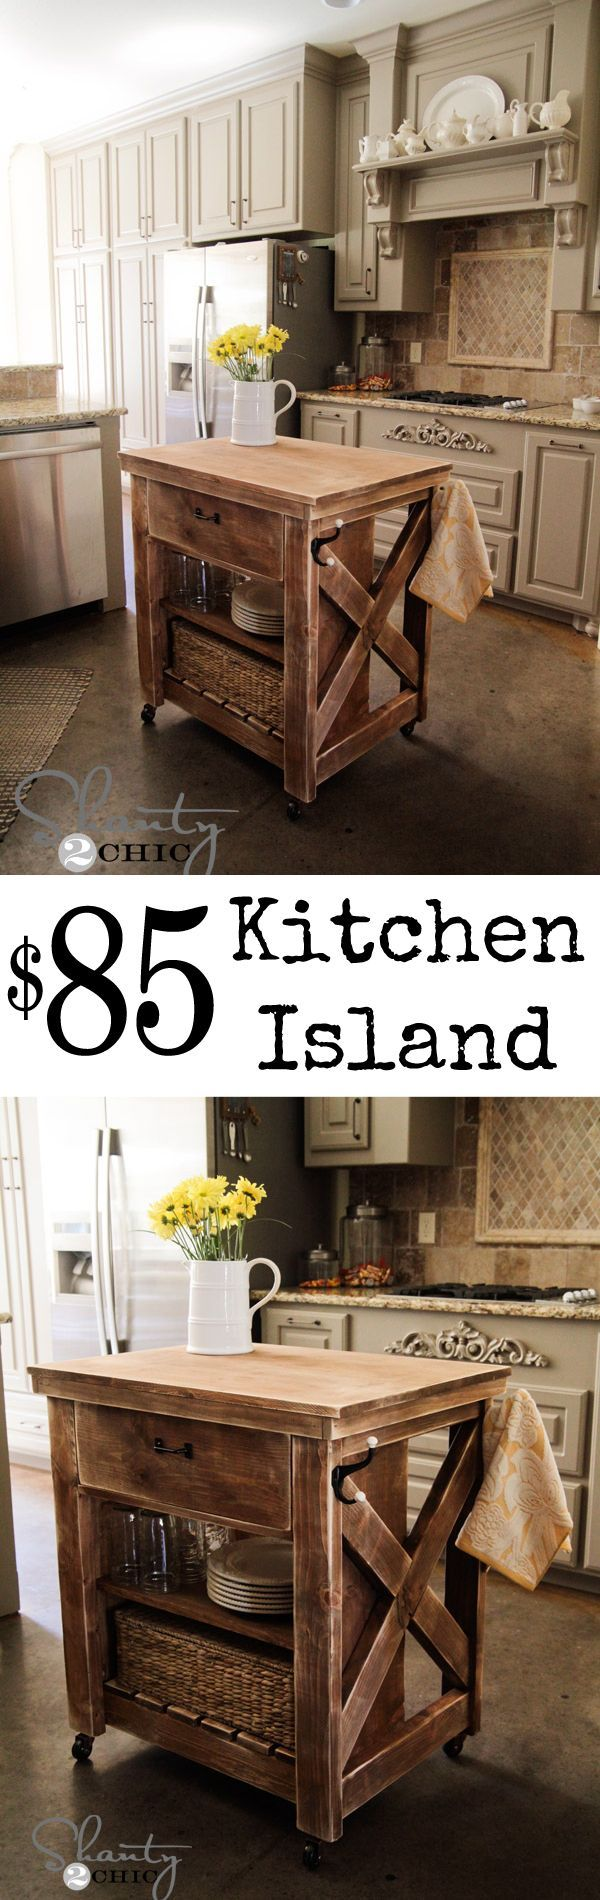 51 best kitchen islands images on pinterest home dream kitchens kitchen island inspired by pottery barn